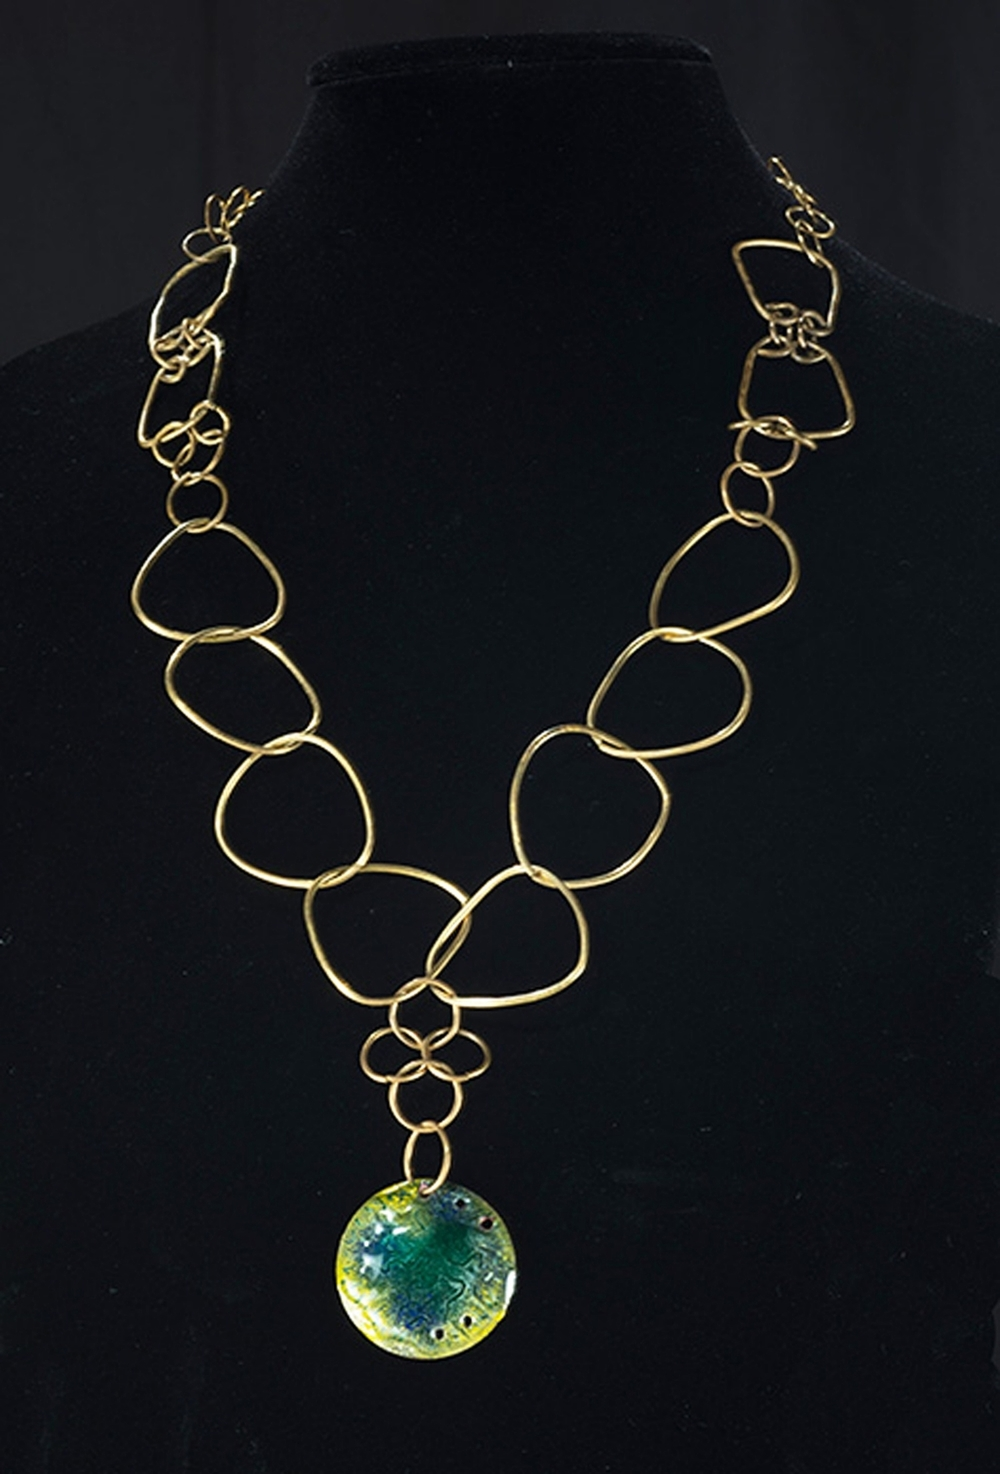 Featured, Fine Metals Necklace in Juried Exhibit at Mary Matteson-Parrish Art Gallery (2013)